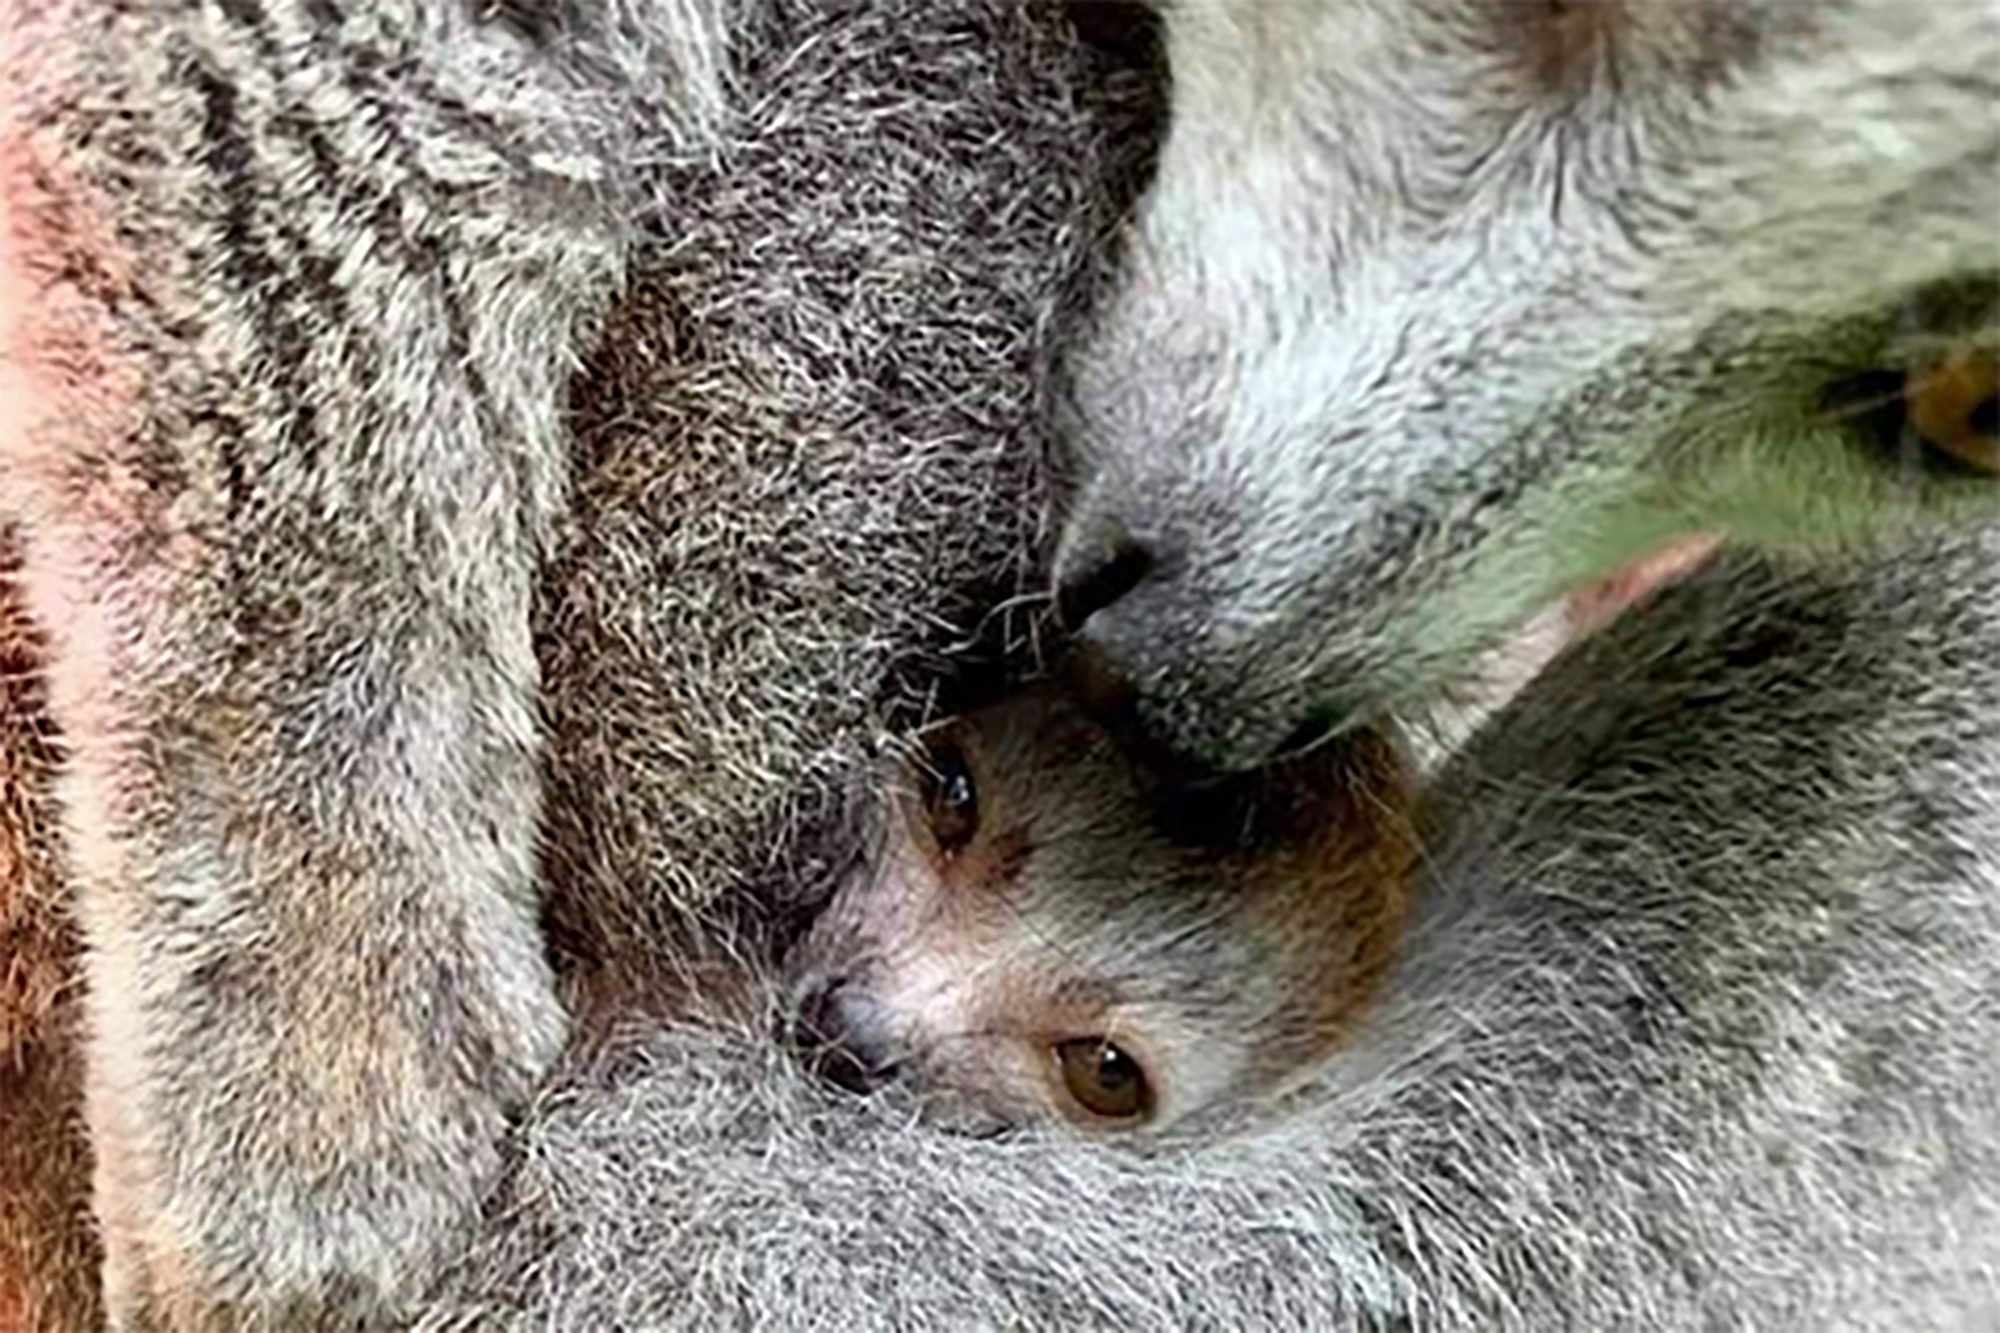 baby lemur in his mother's arms